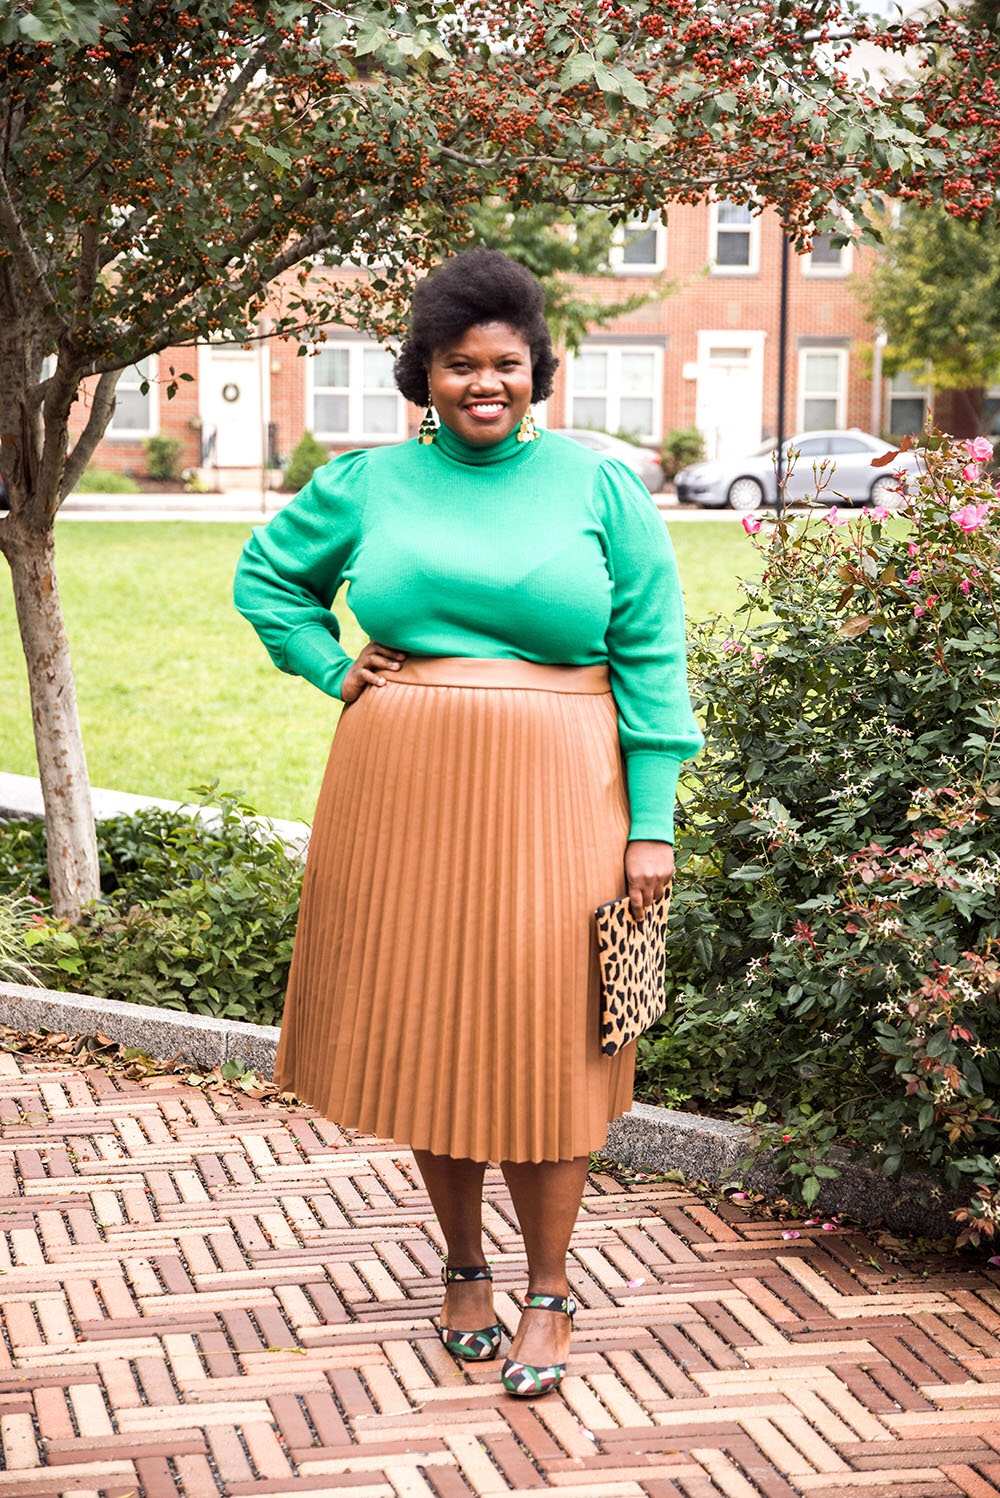 Women Who Wear What They Like - Grown and Curvy Woman